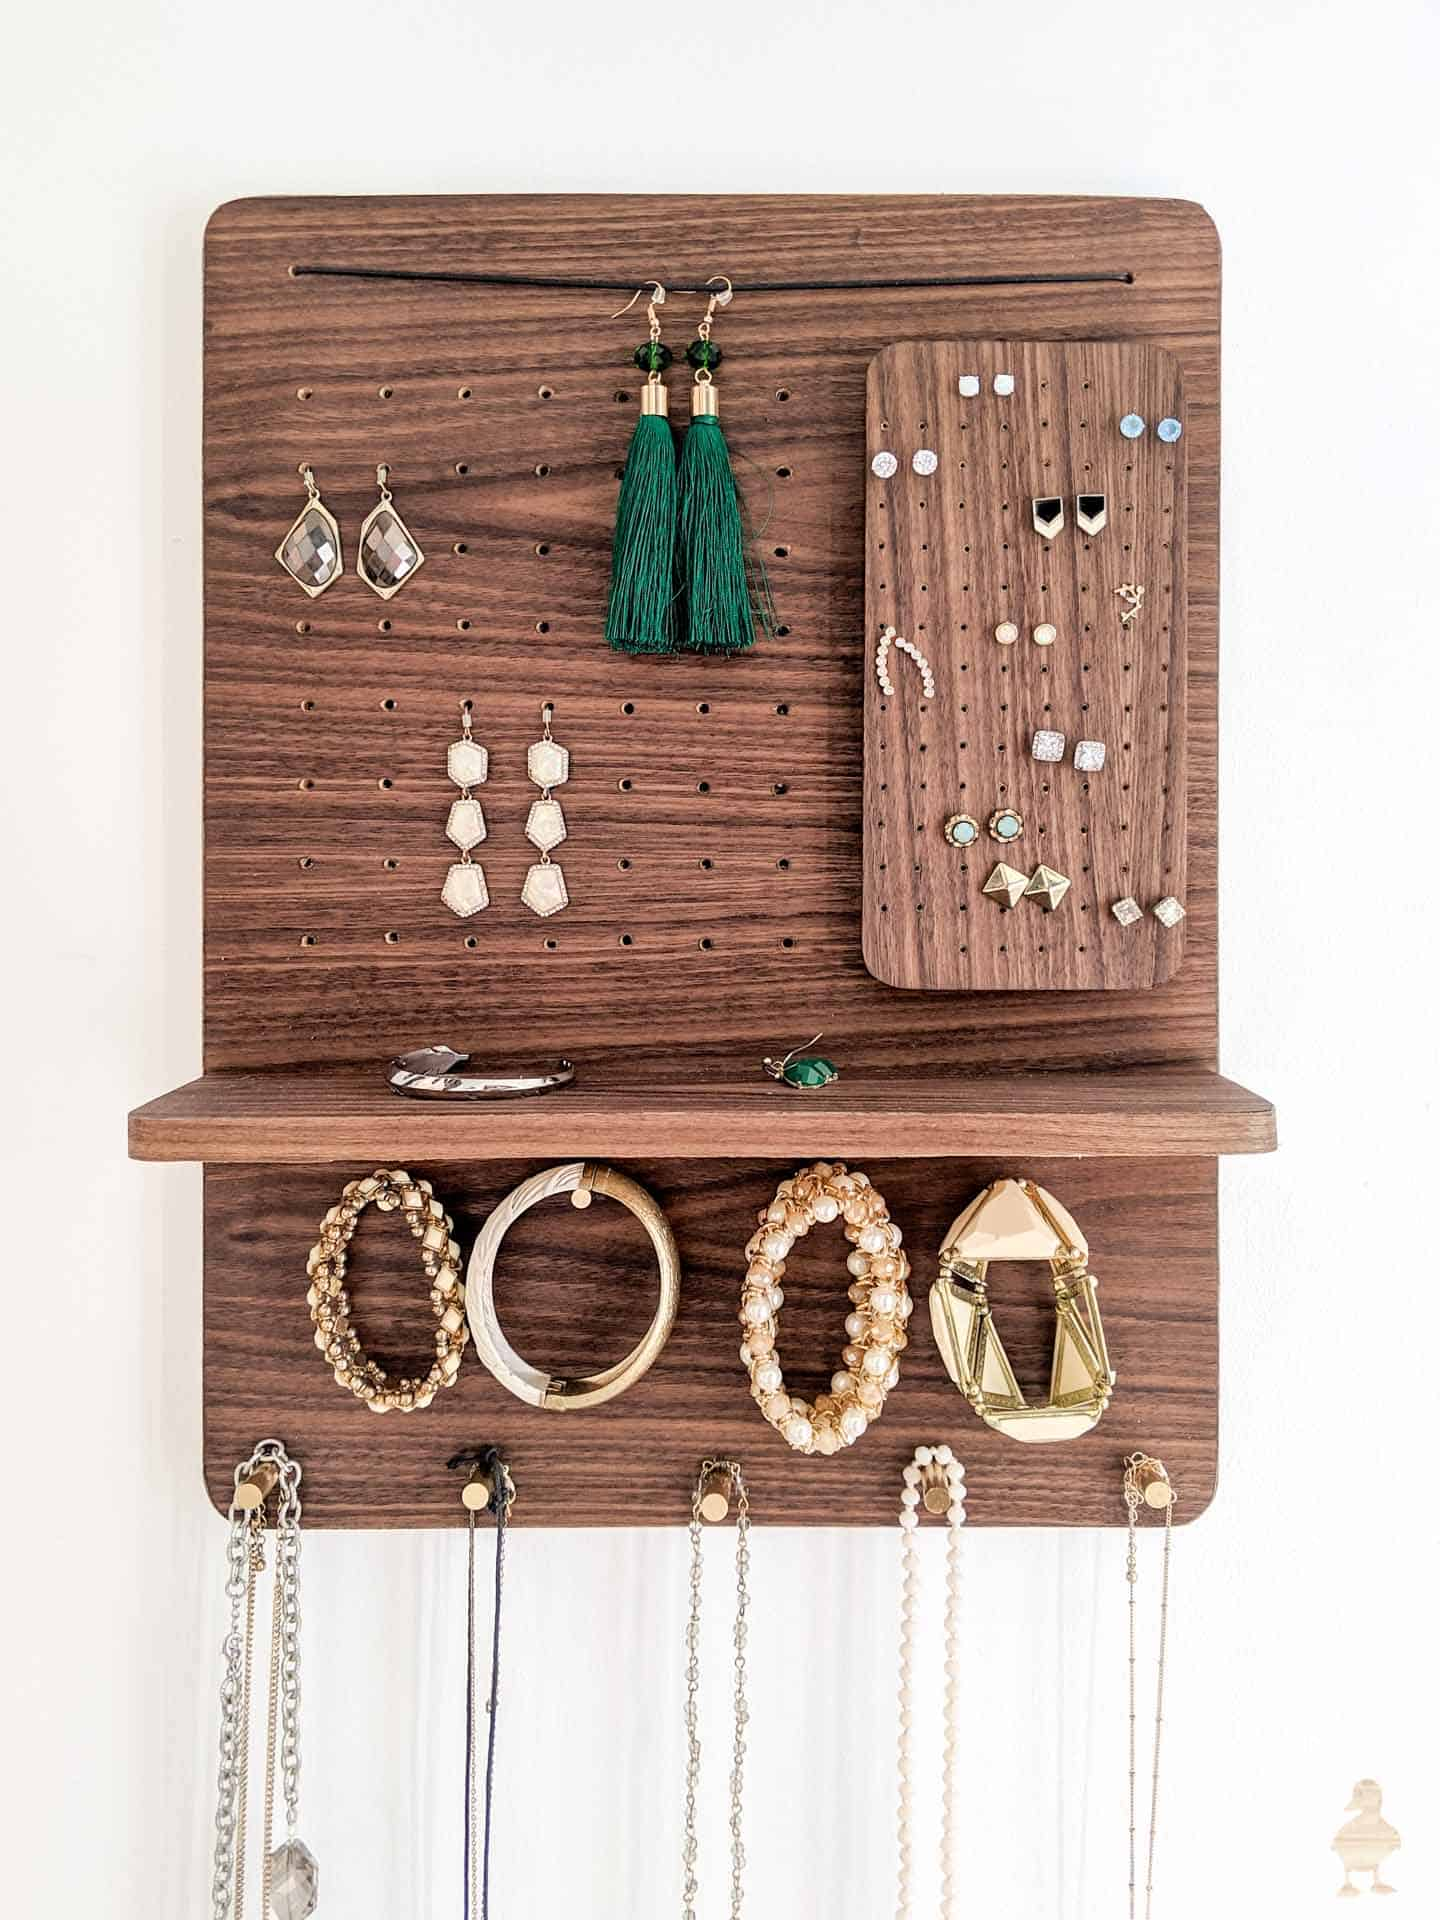 Wall mounted wooden peg, shelf, and holes organizer